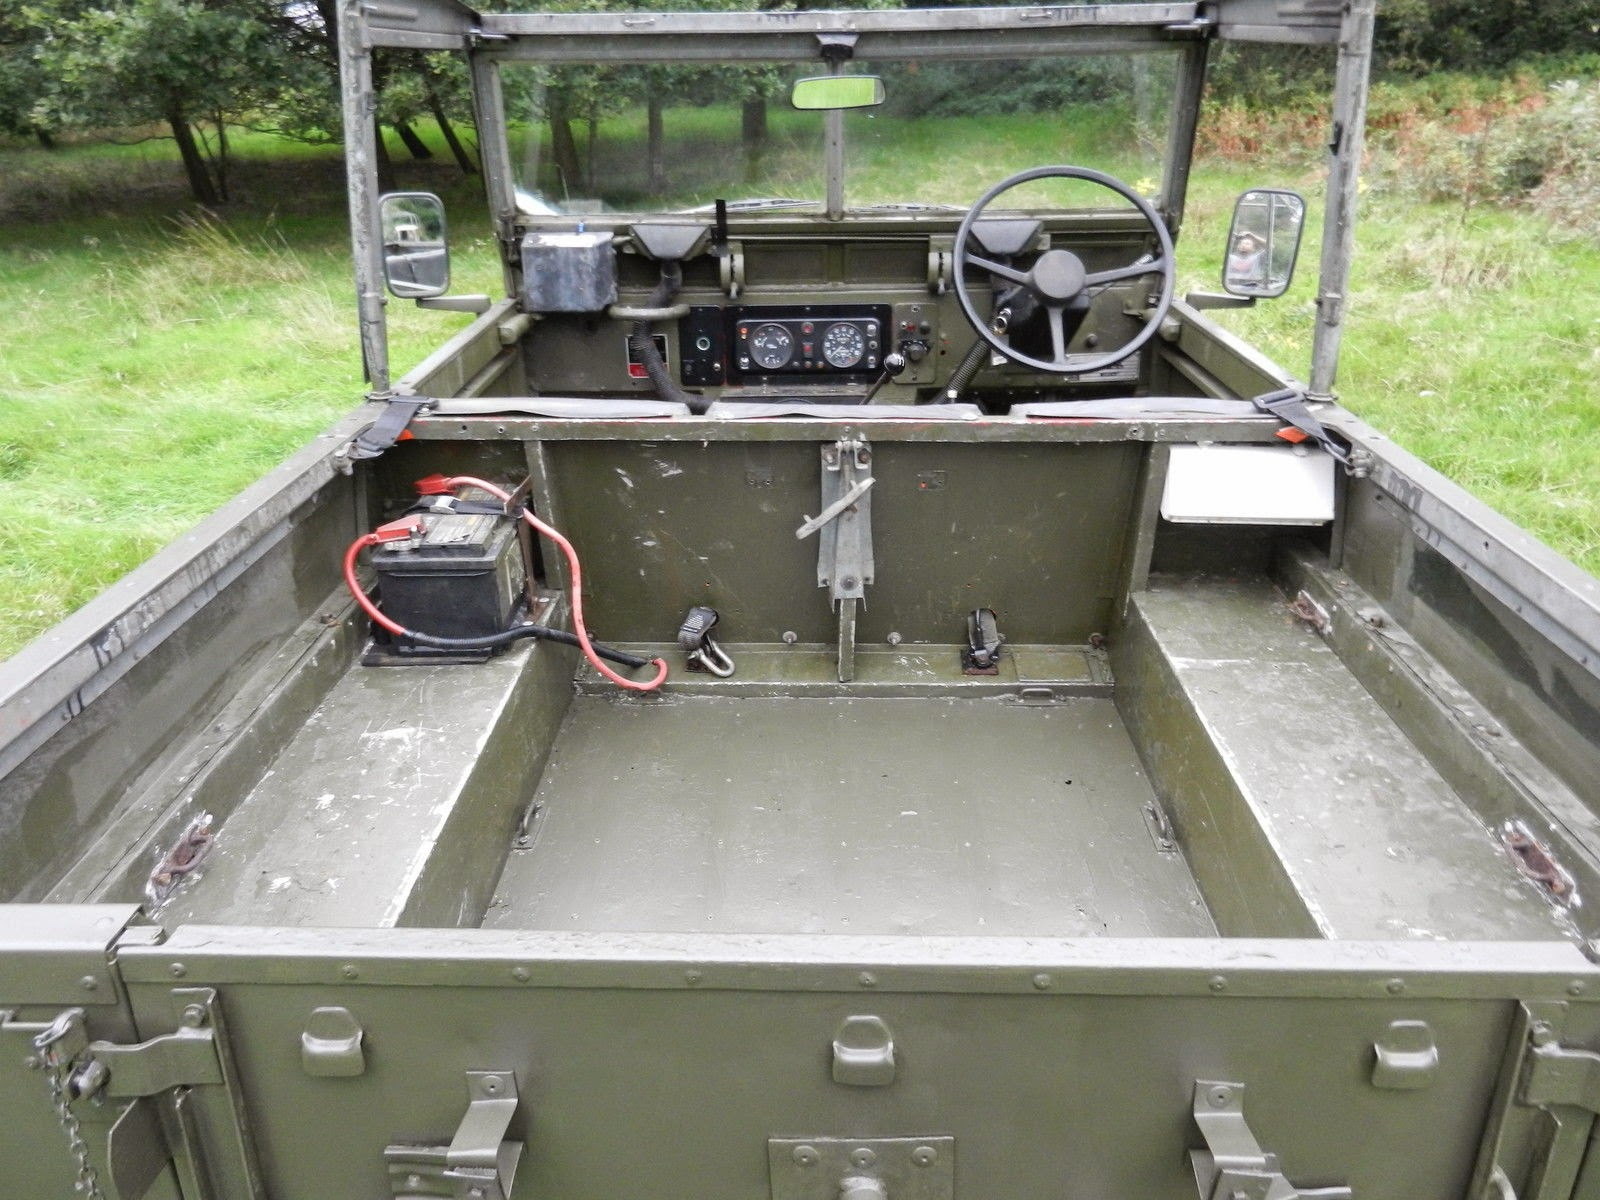 Land Rover Series Interior Cabin on Land Rover Series Engine